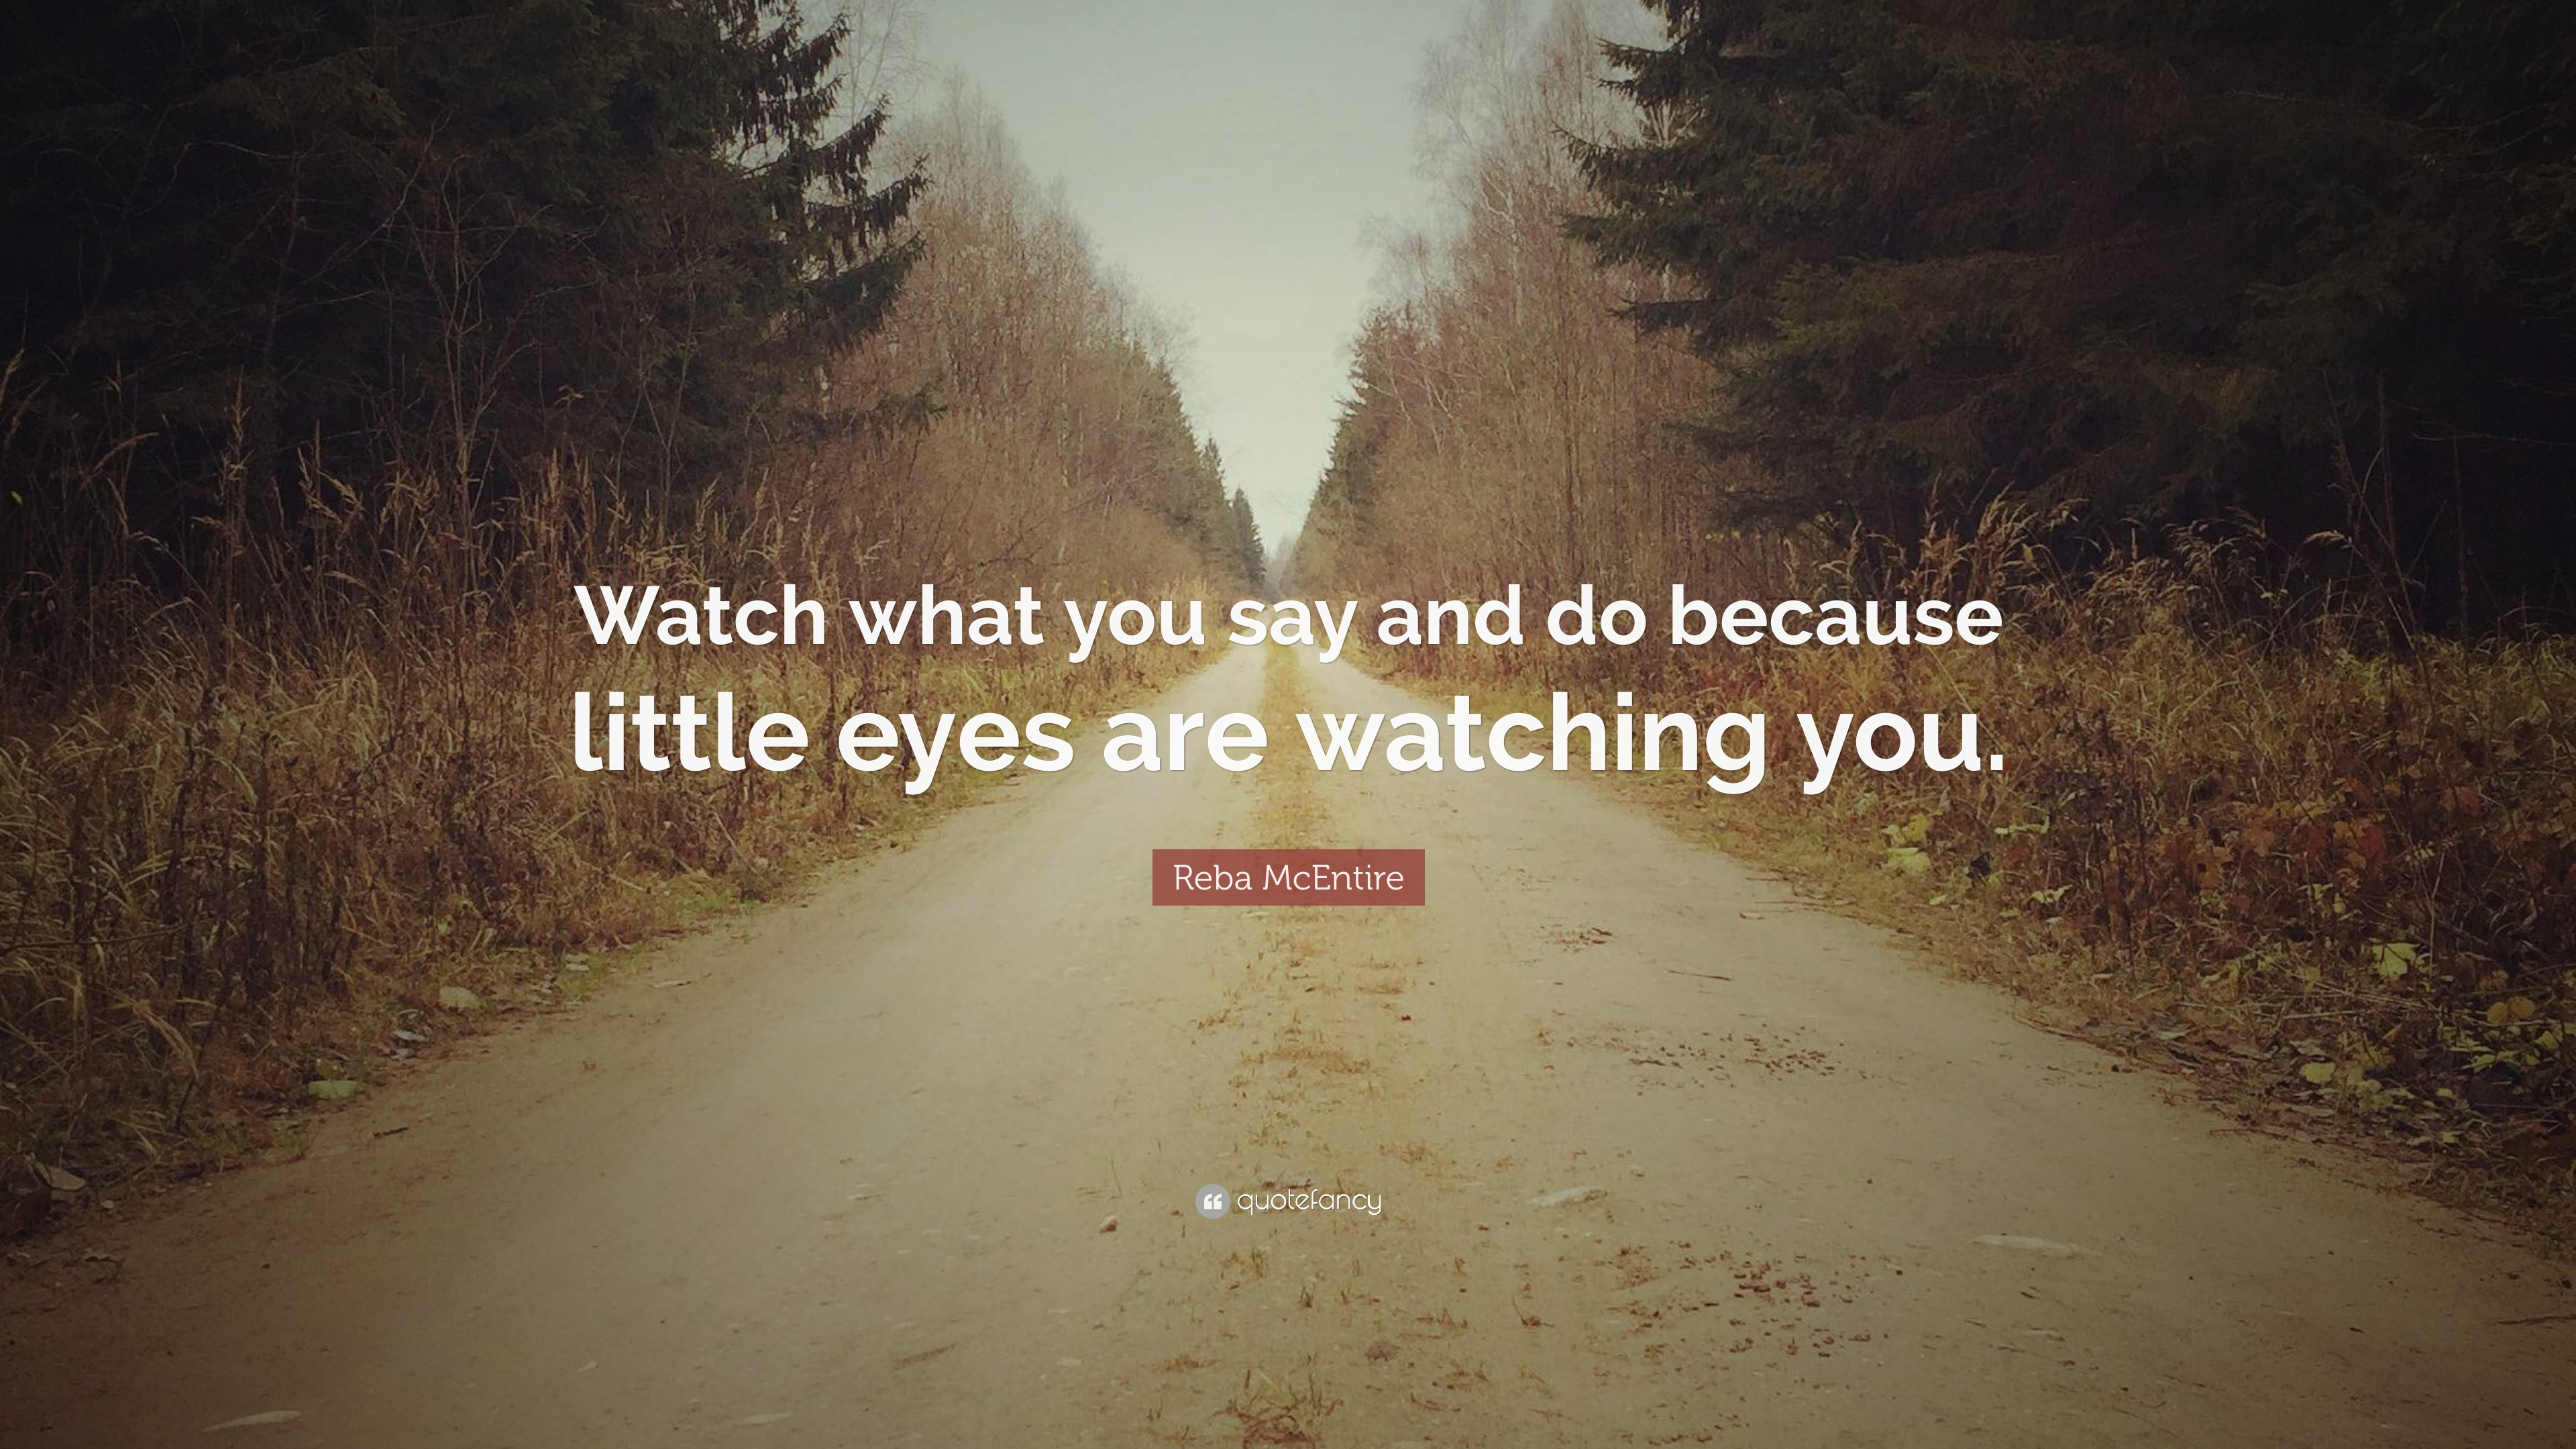 20 Mar – Little Eyes Are Watching – Dayle's Blog